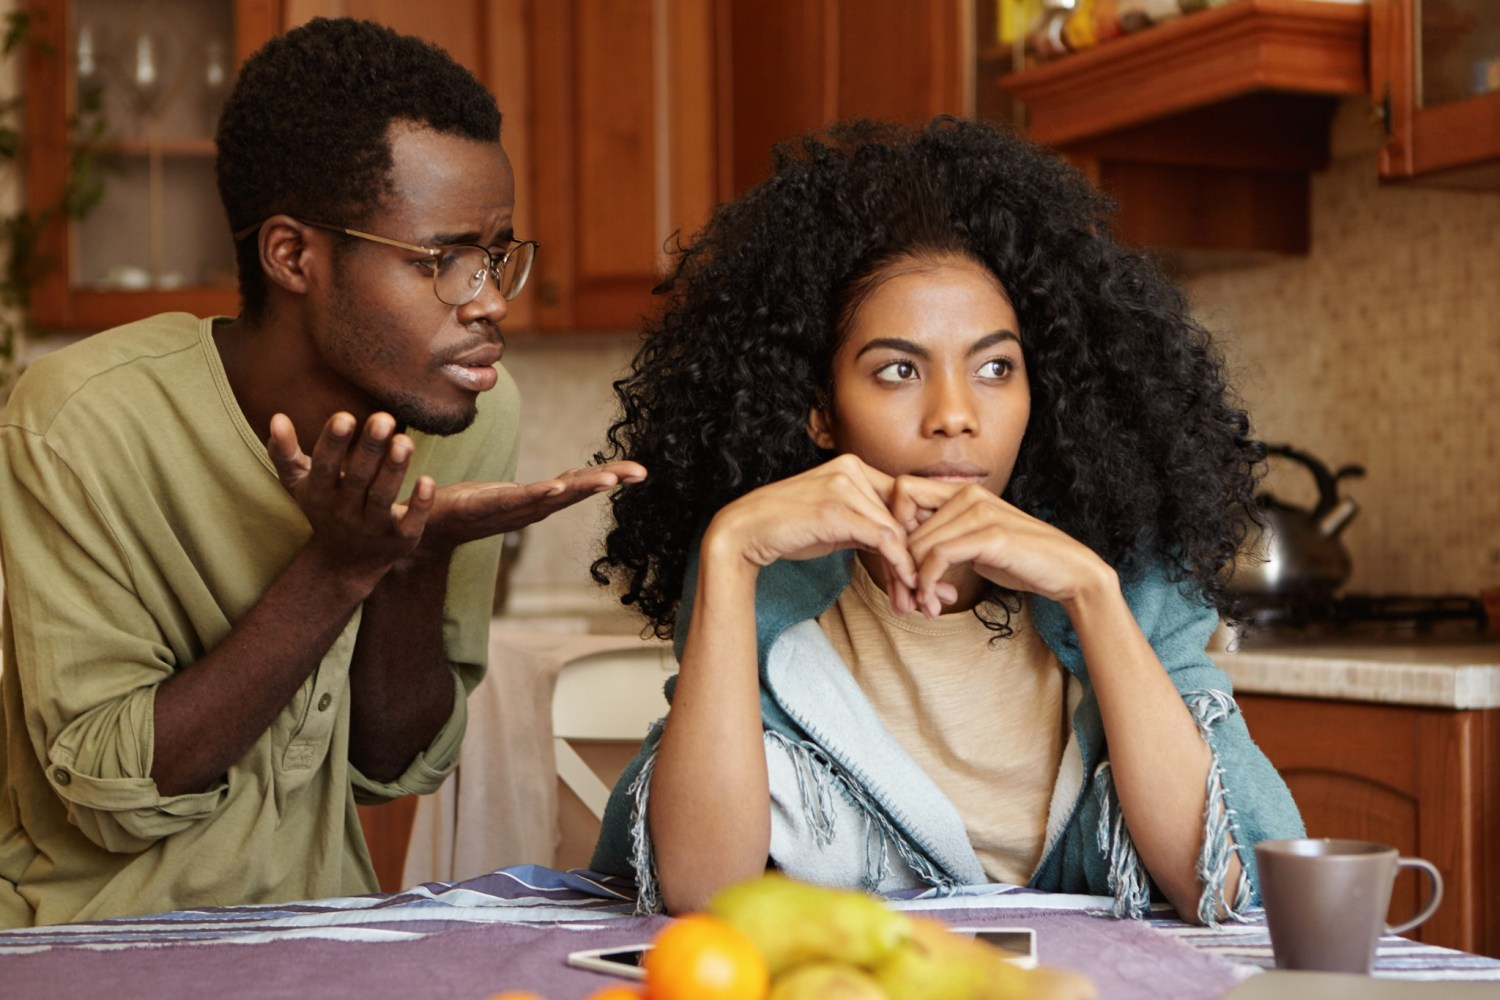 Top 12 Signs It's Time To Move On From A Relationship